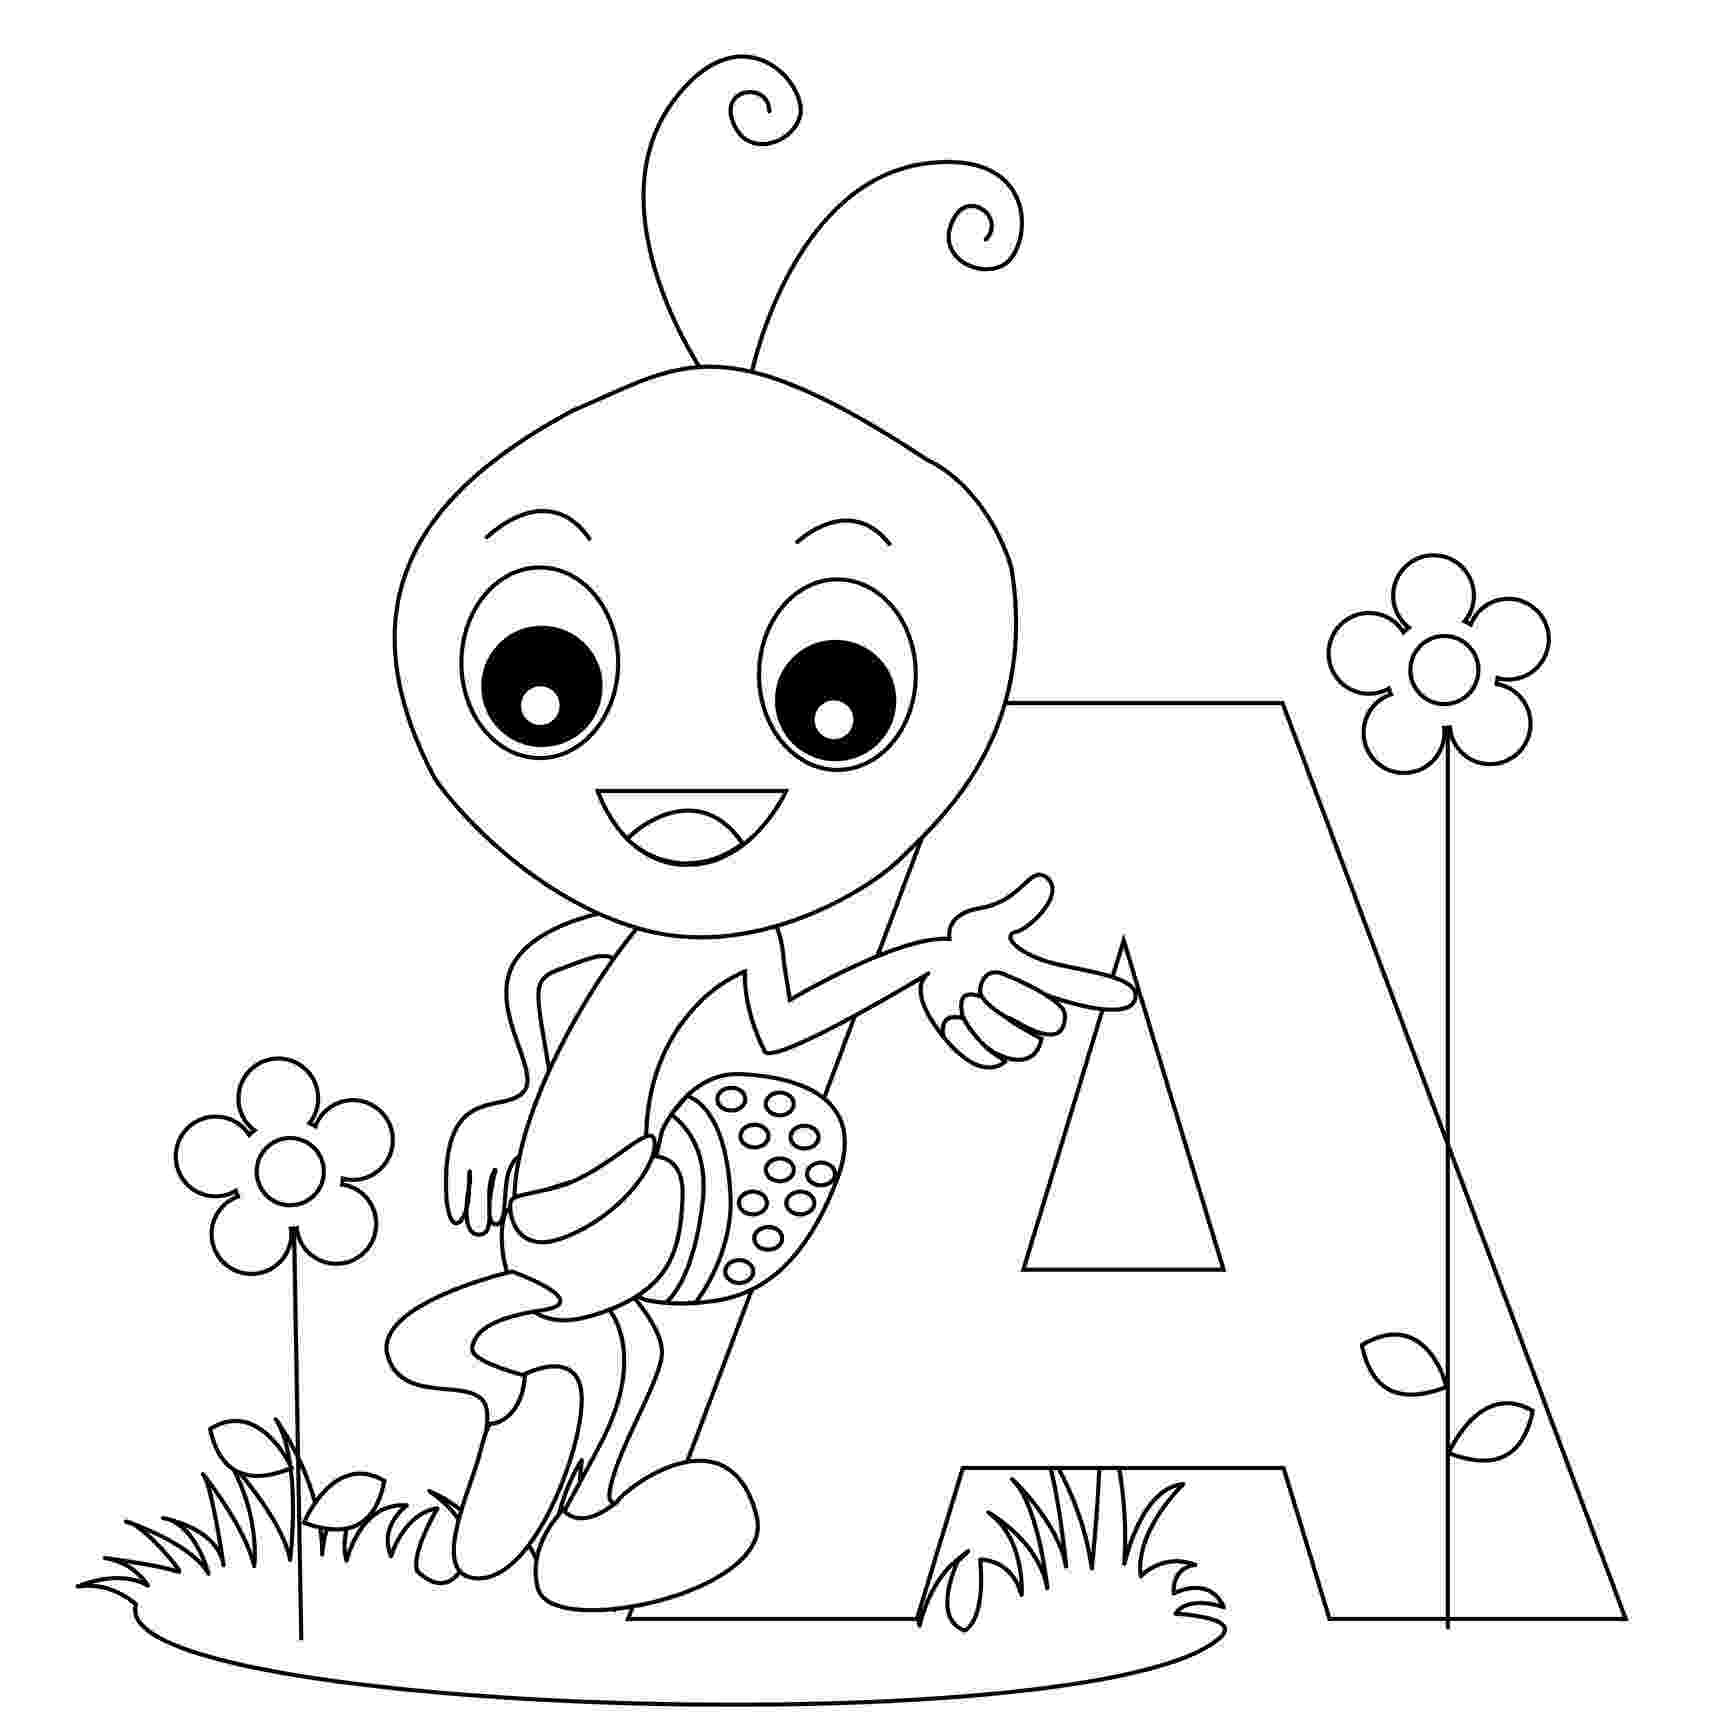 printable alphabet coloring pages free printable alphabet coloring pages for kids best pages printable coloring alphabet